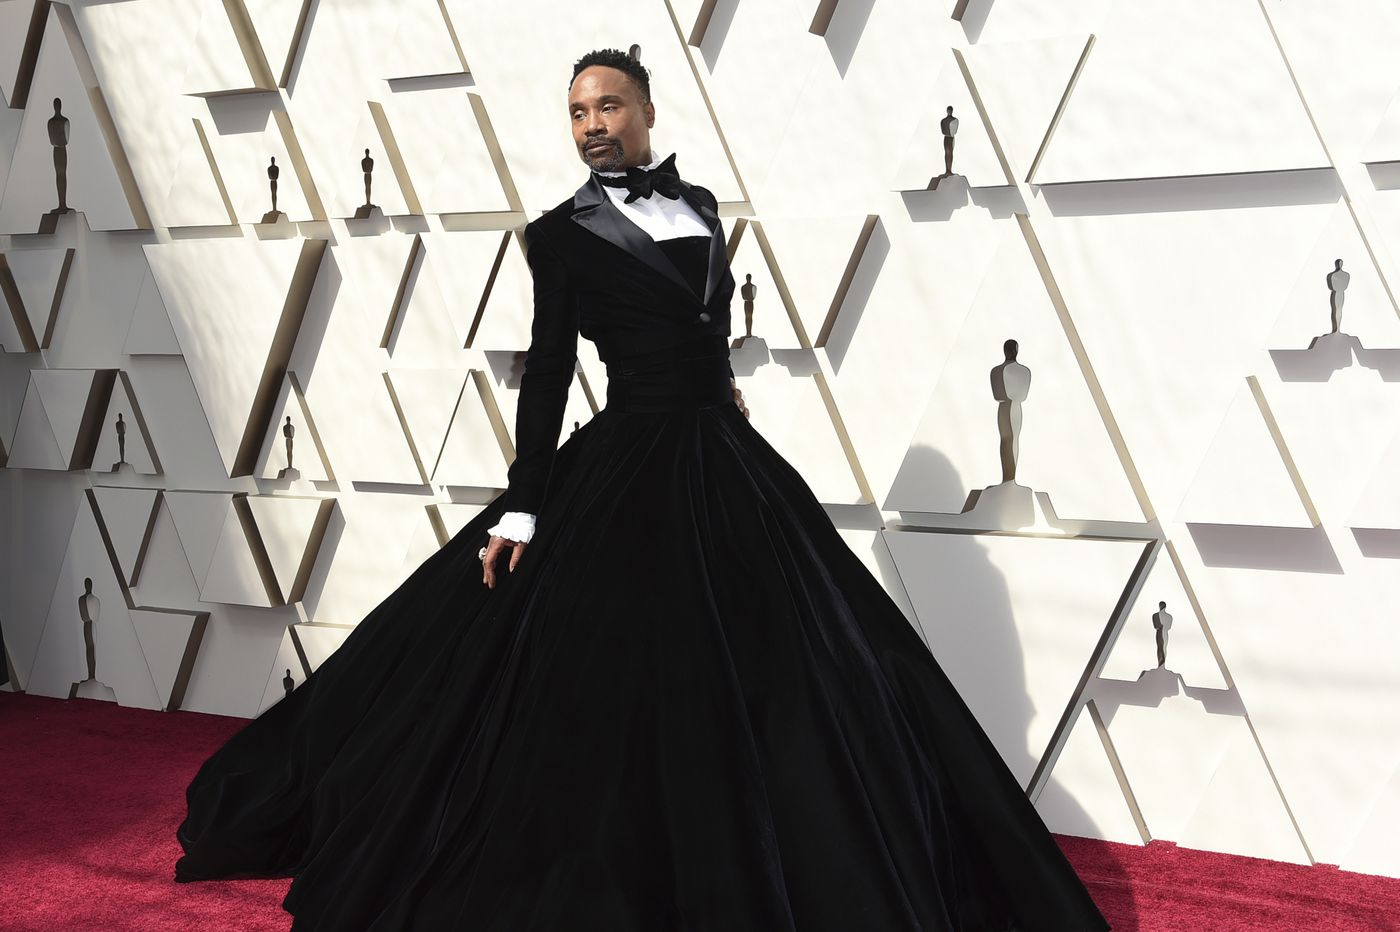 Billy Porter's fabulous red carpet gown says nothing about any lack of masculinity. Deal with it. | Elizabeth Wellington